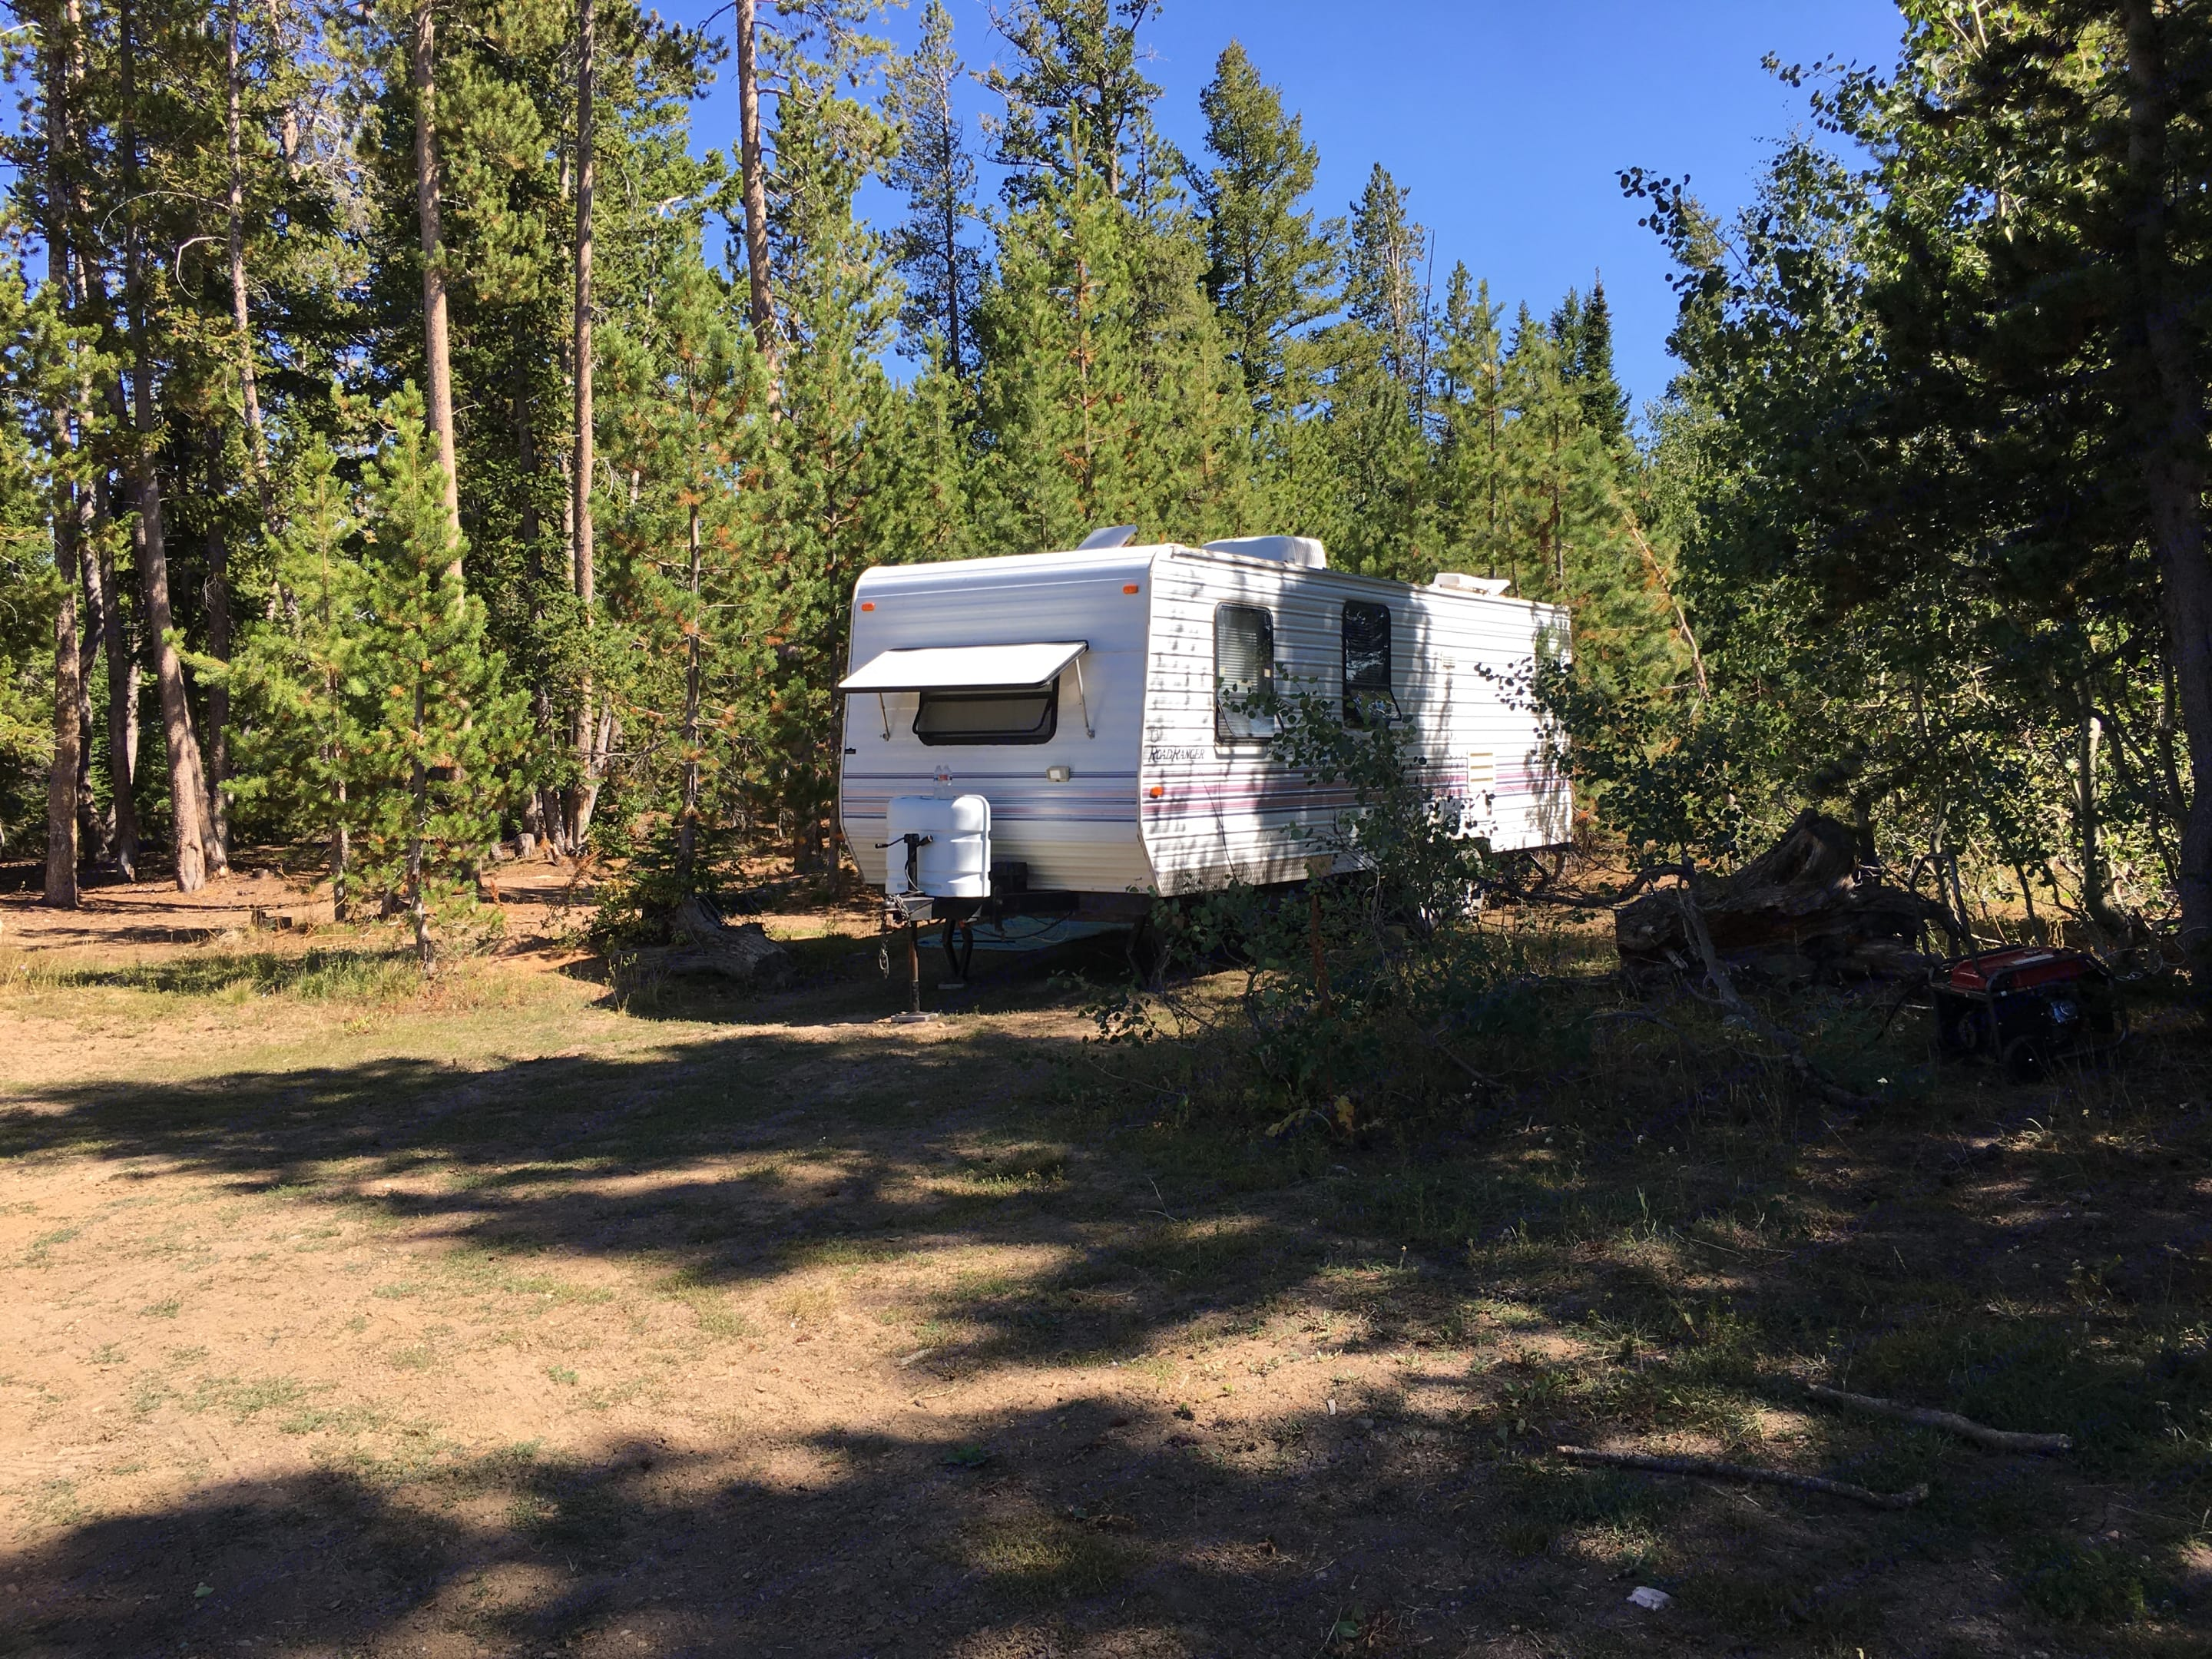 Enjoy some away time and get reacquainted with nature!. Kit Road Ranger 27 1997